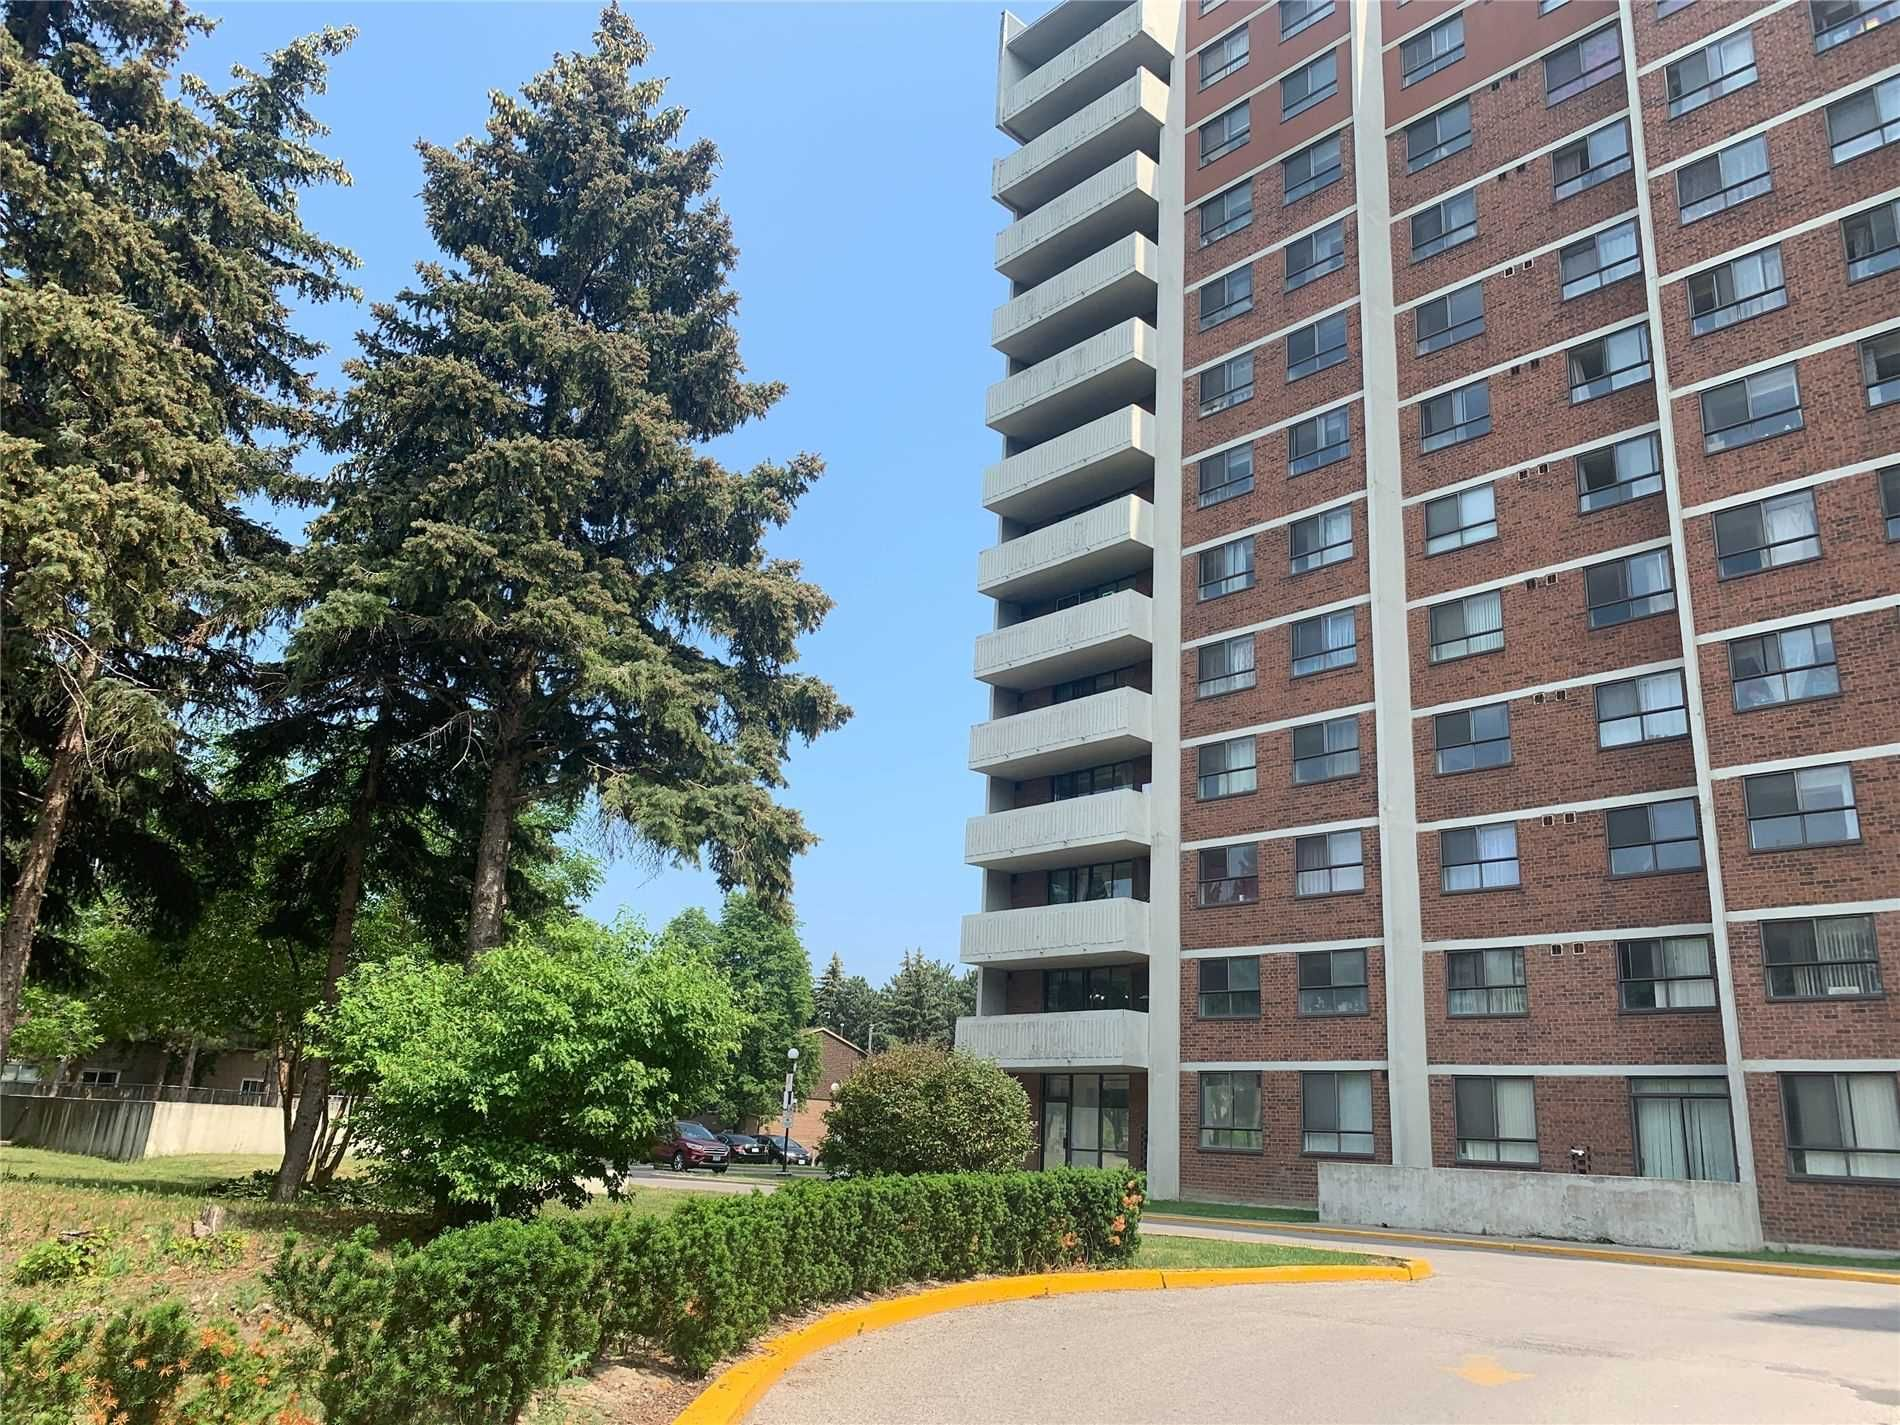 10 Stonehill Crt, unit 407 for sale in Toronto - image #2